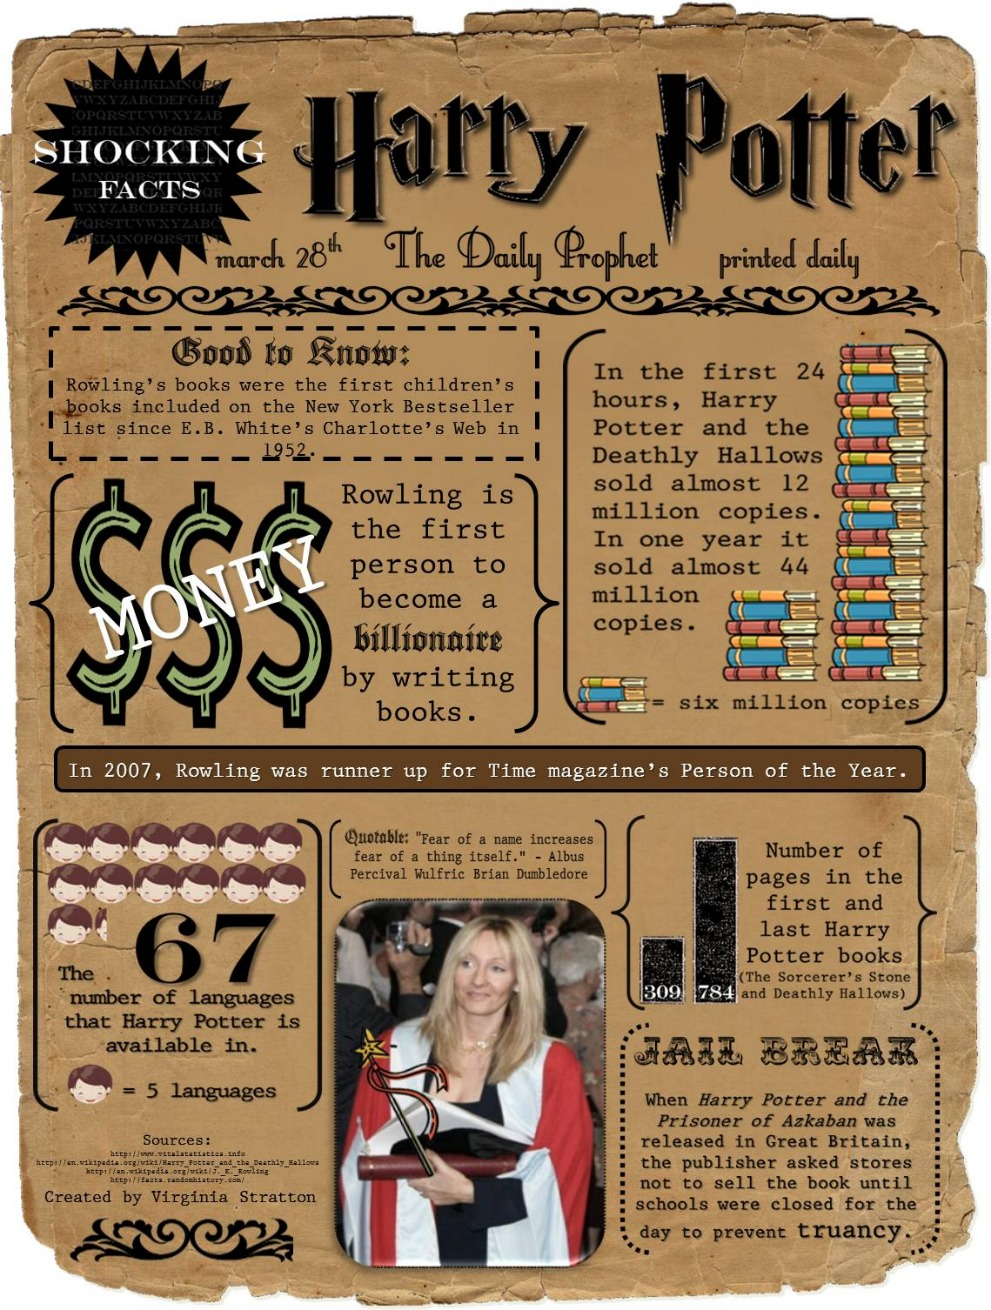 Shocking facts about Harry Potter